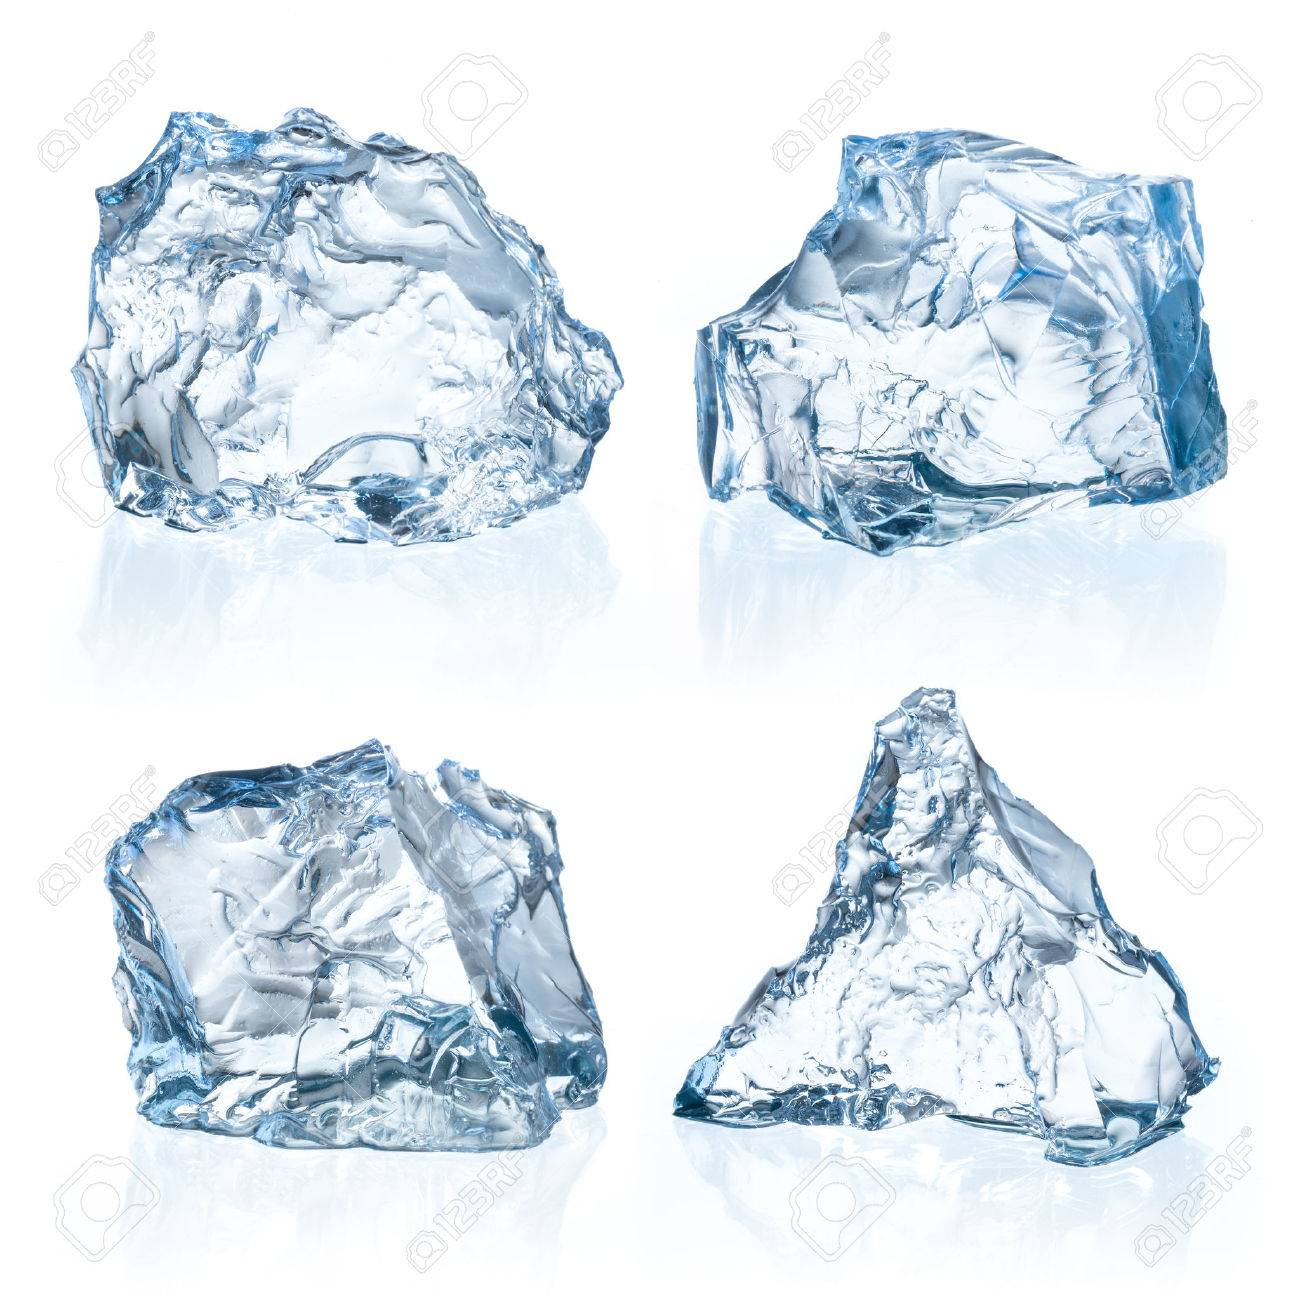 Pieces of ice on a white background. - 54475611